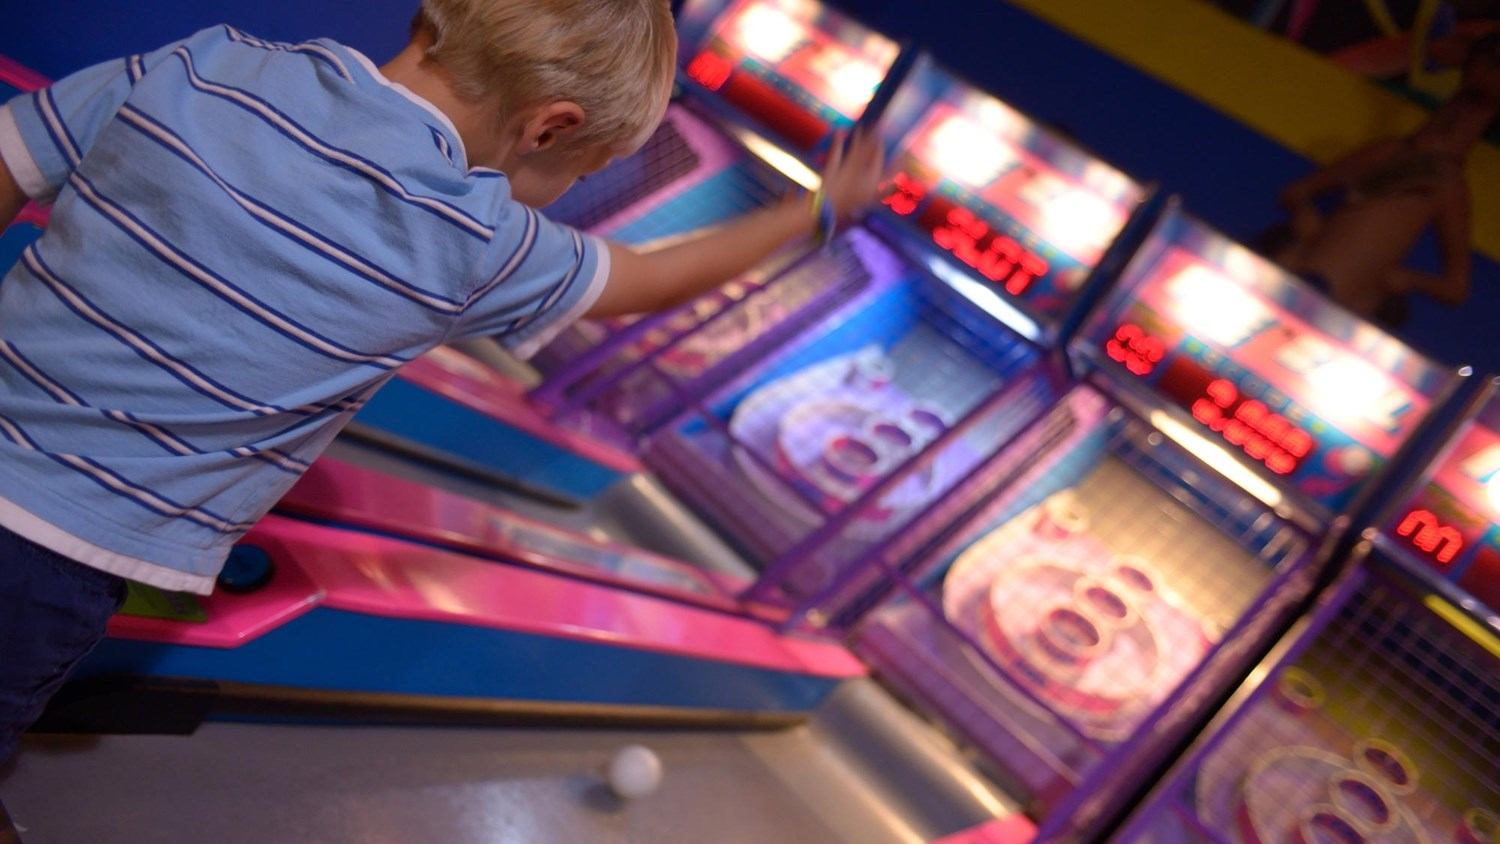 A boy playing skeeball in the arcade